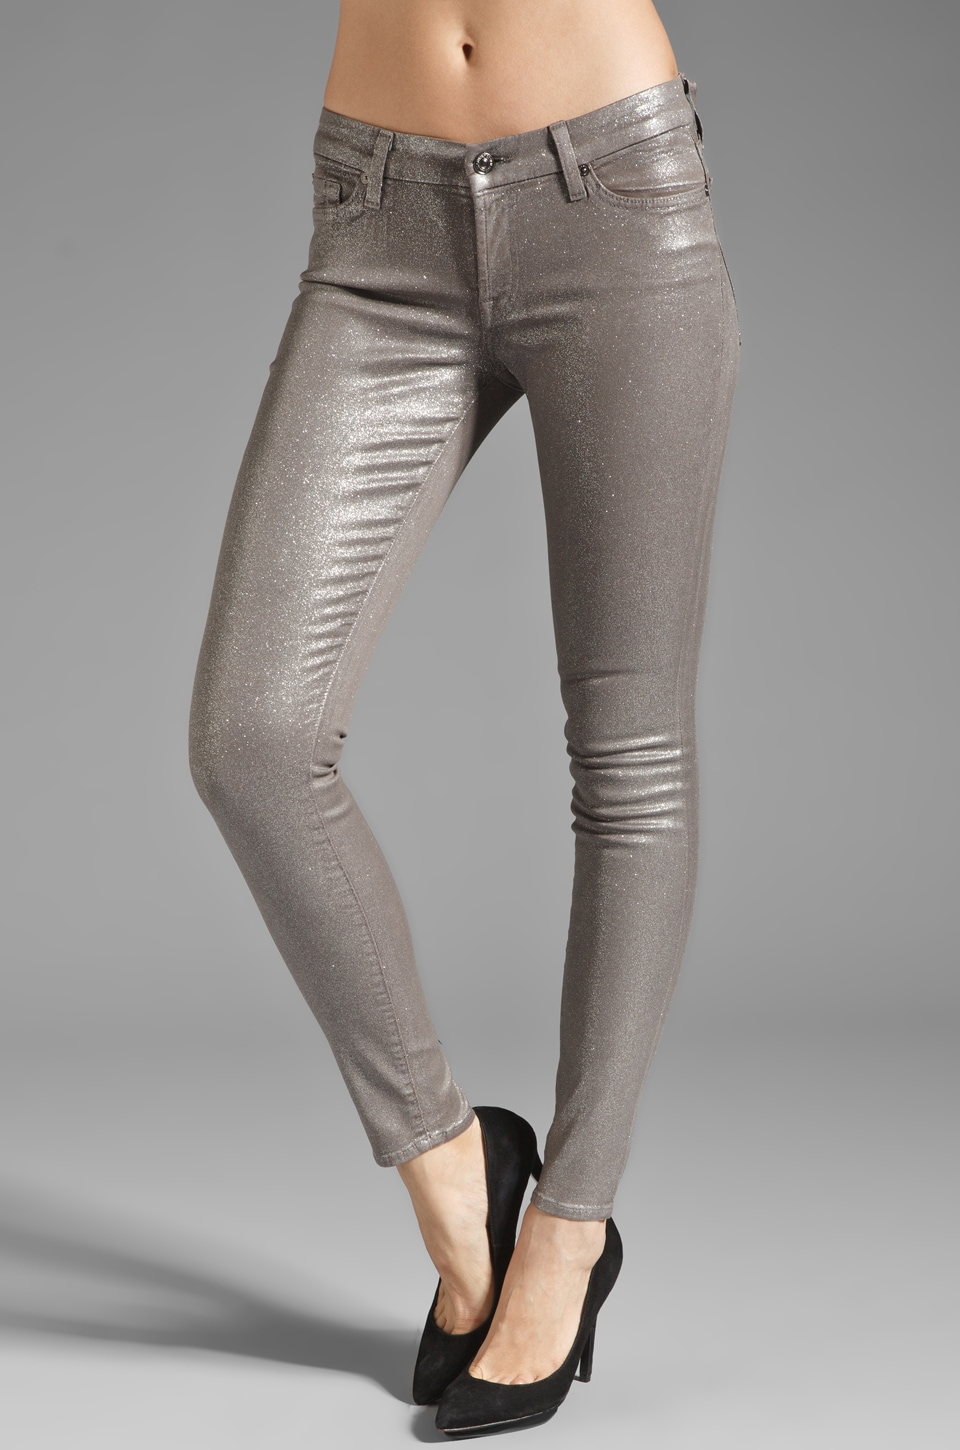 7 For All Mankind The Skinny in Grey Glitter